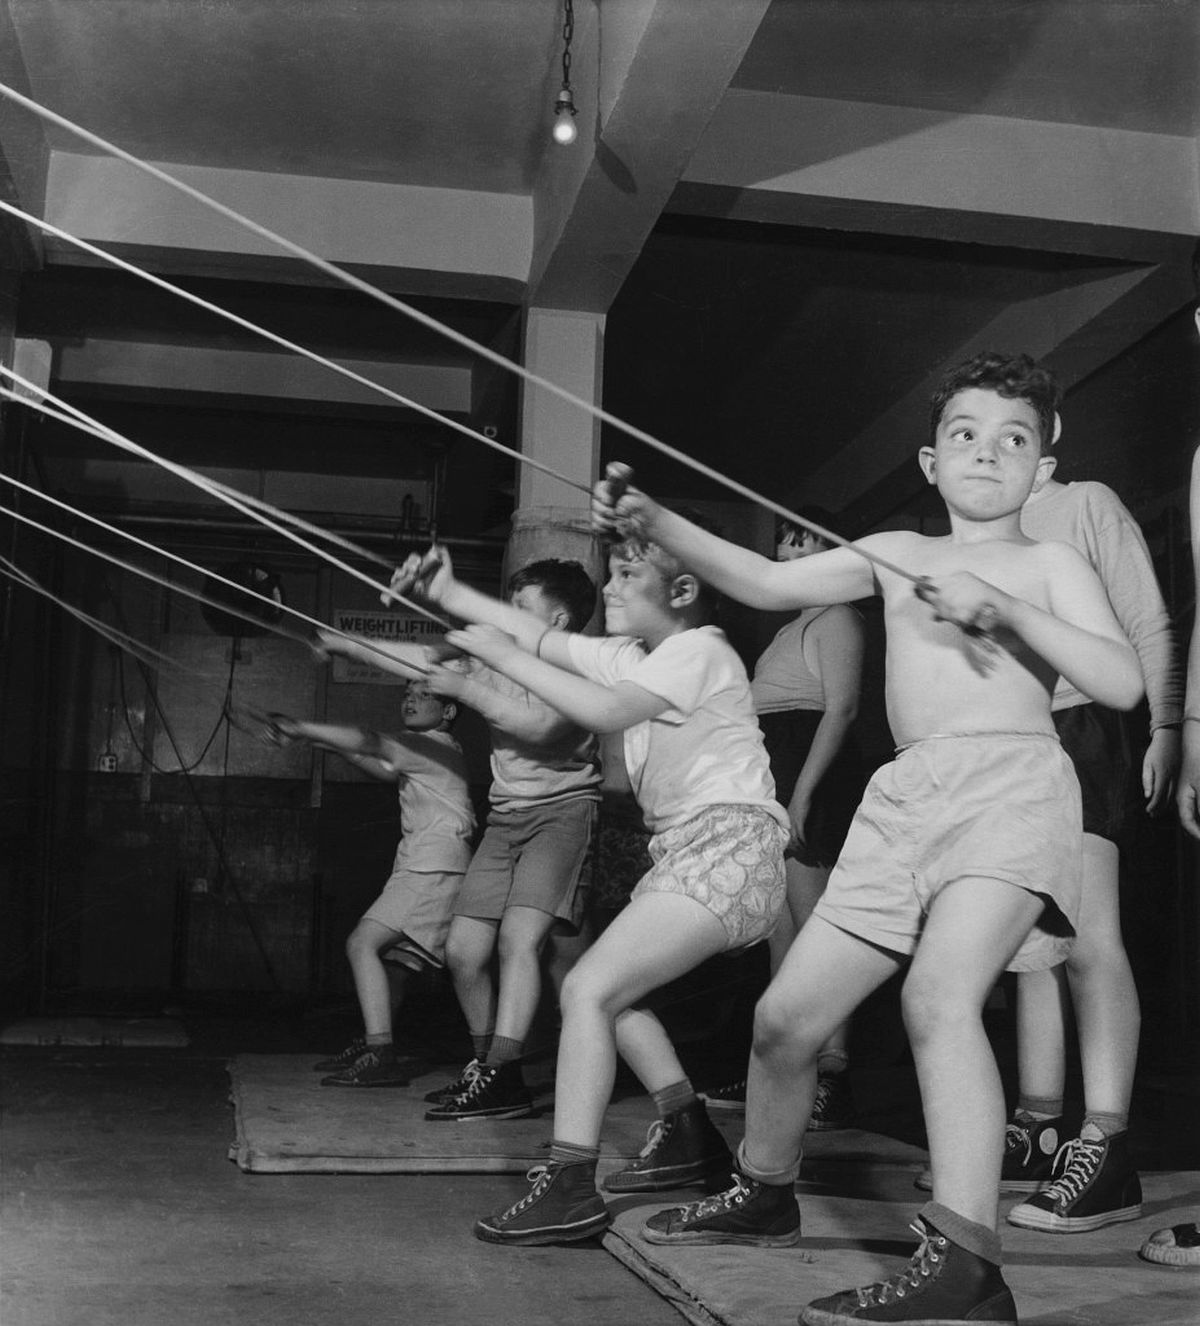 Roman Vishniac, [Boys exercising in the gymnasium of the Jewish Community House of Bensonhurst, Brooklyn], 1949. Gelatin silver print. © Mara Vishniac Kohn, courtesy International Center of Photography.